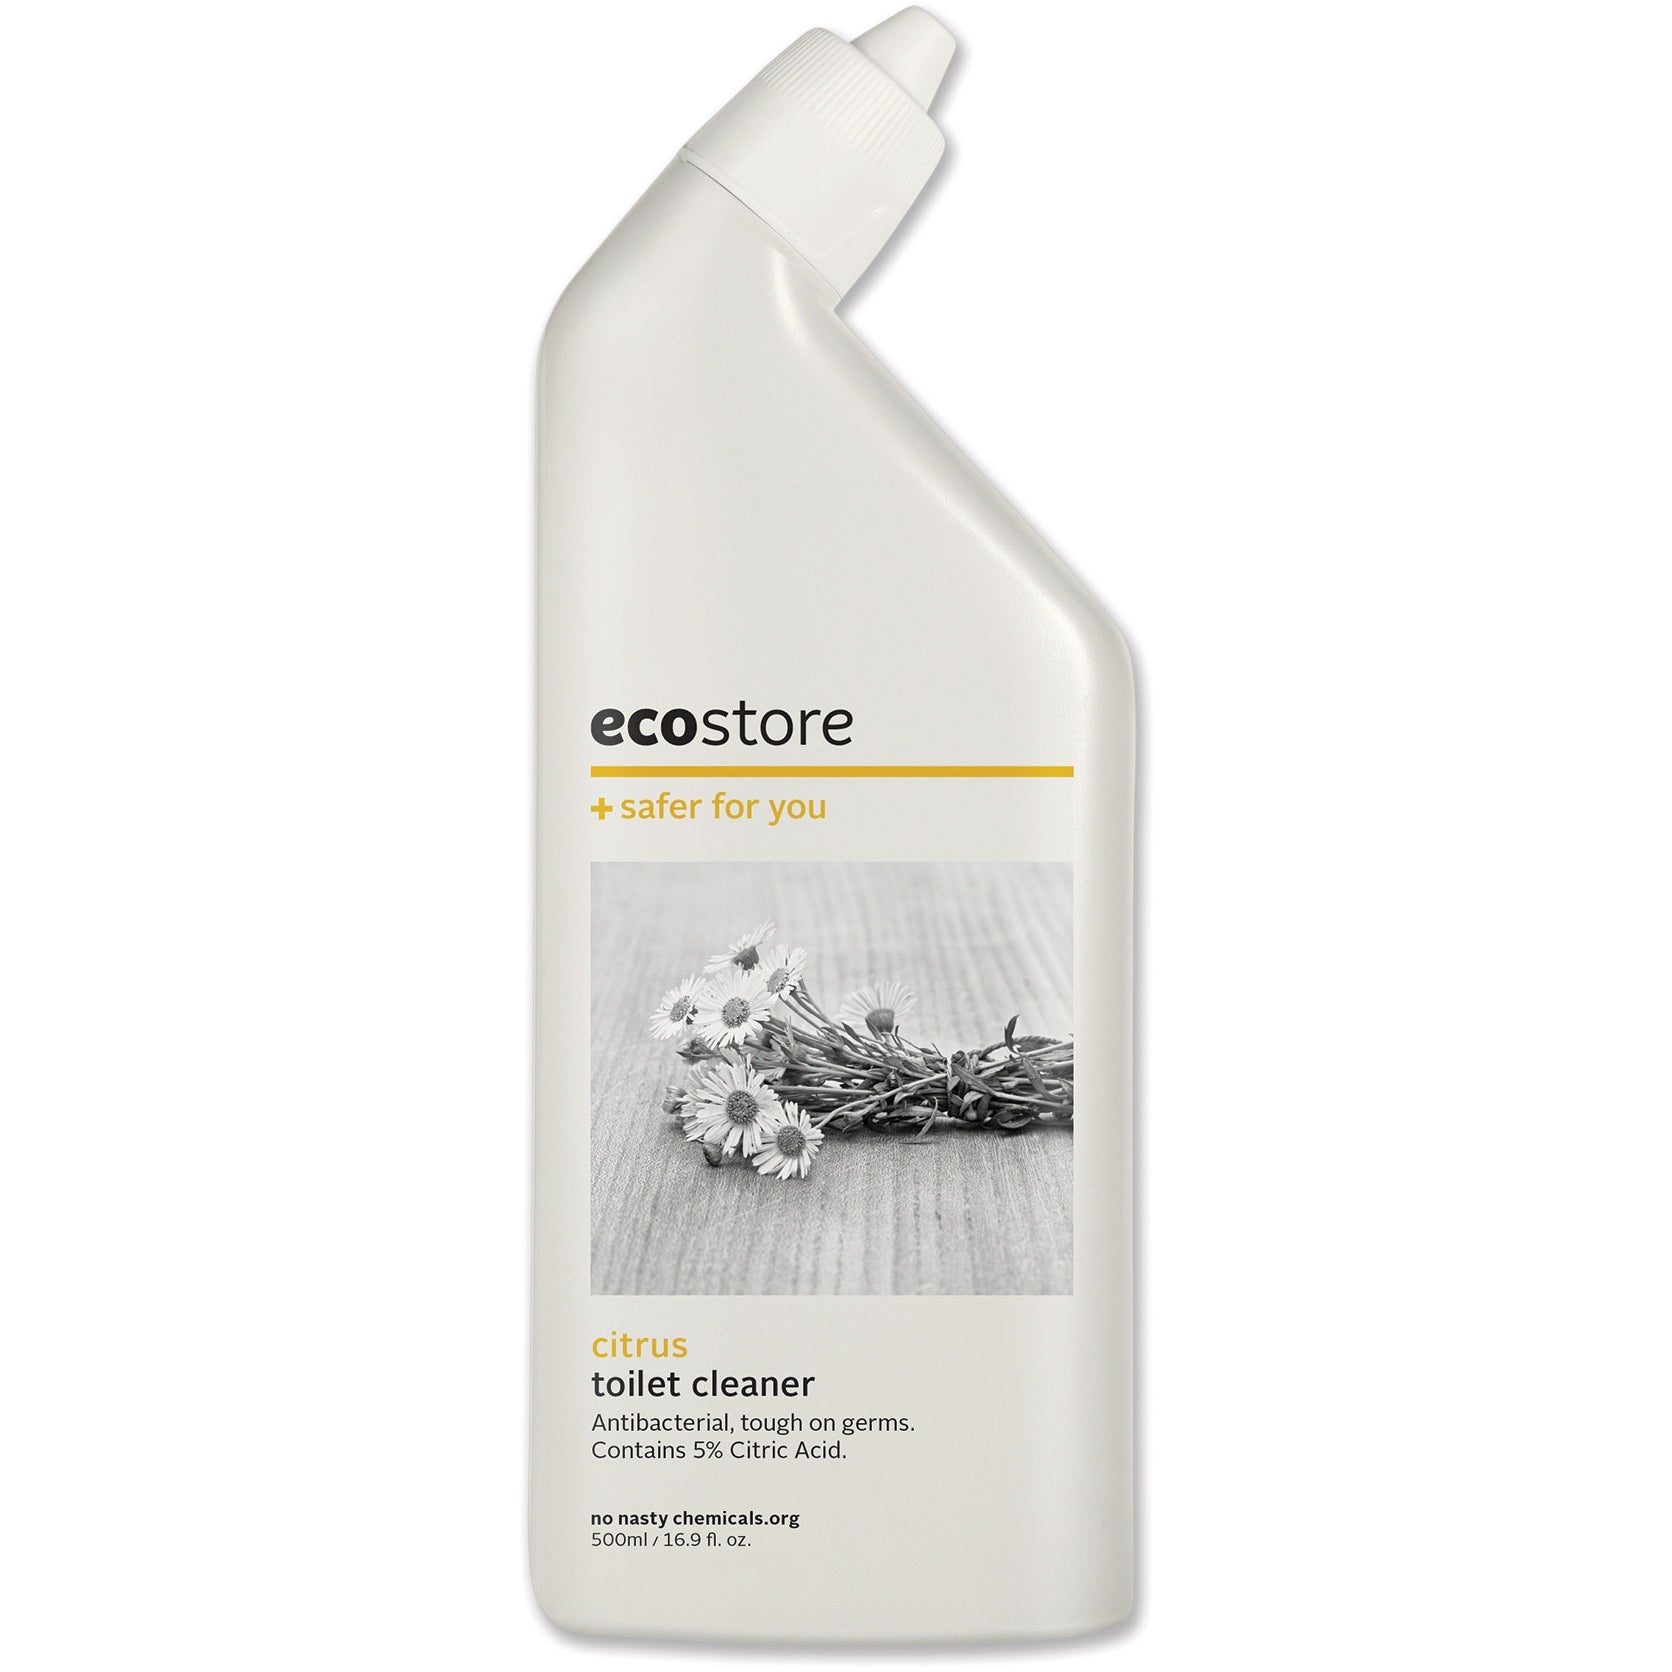 Ecostore Toilet Cleaner Citrus 500ml - Essentially Health Online Vegan Health Store Afterpay